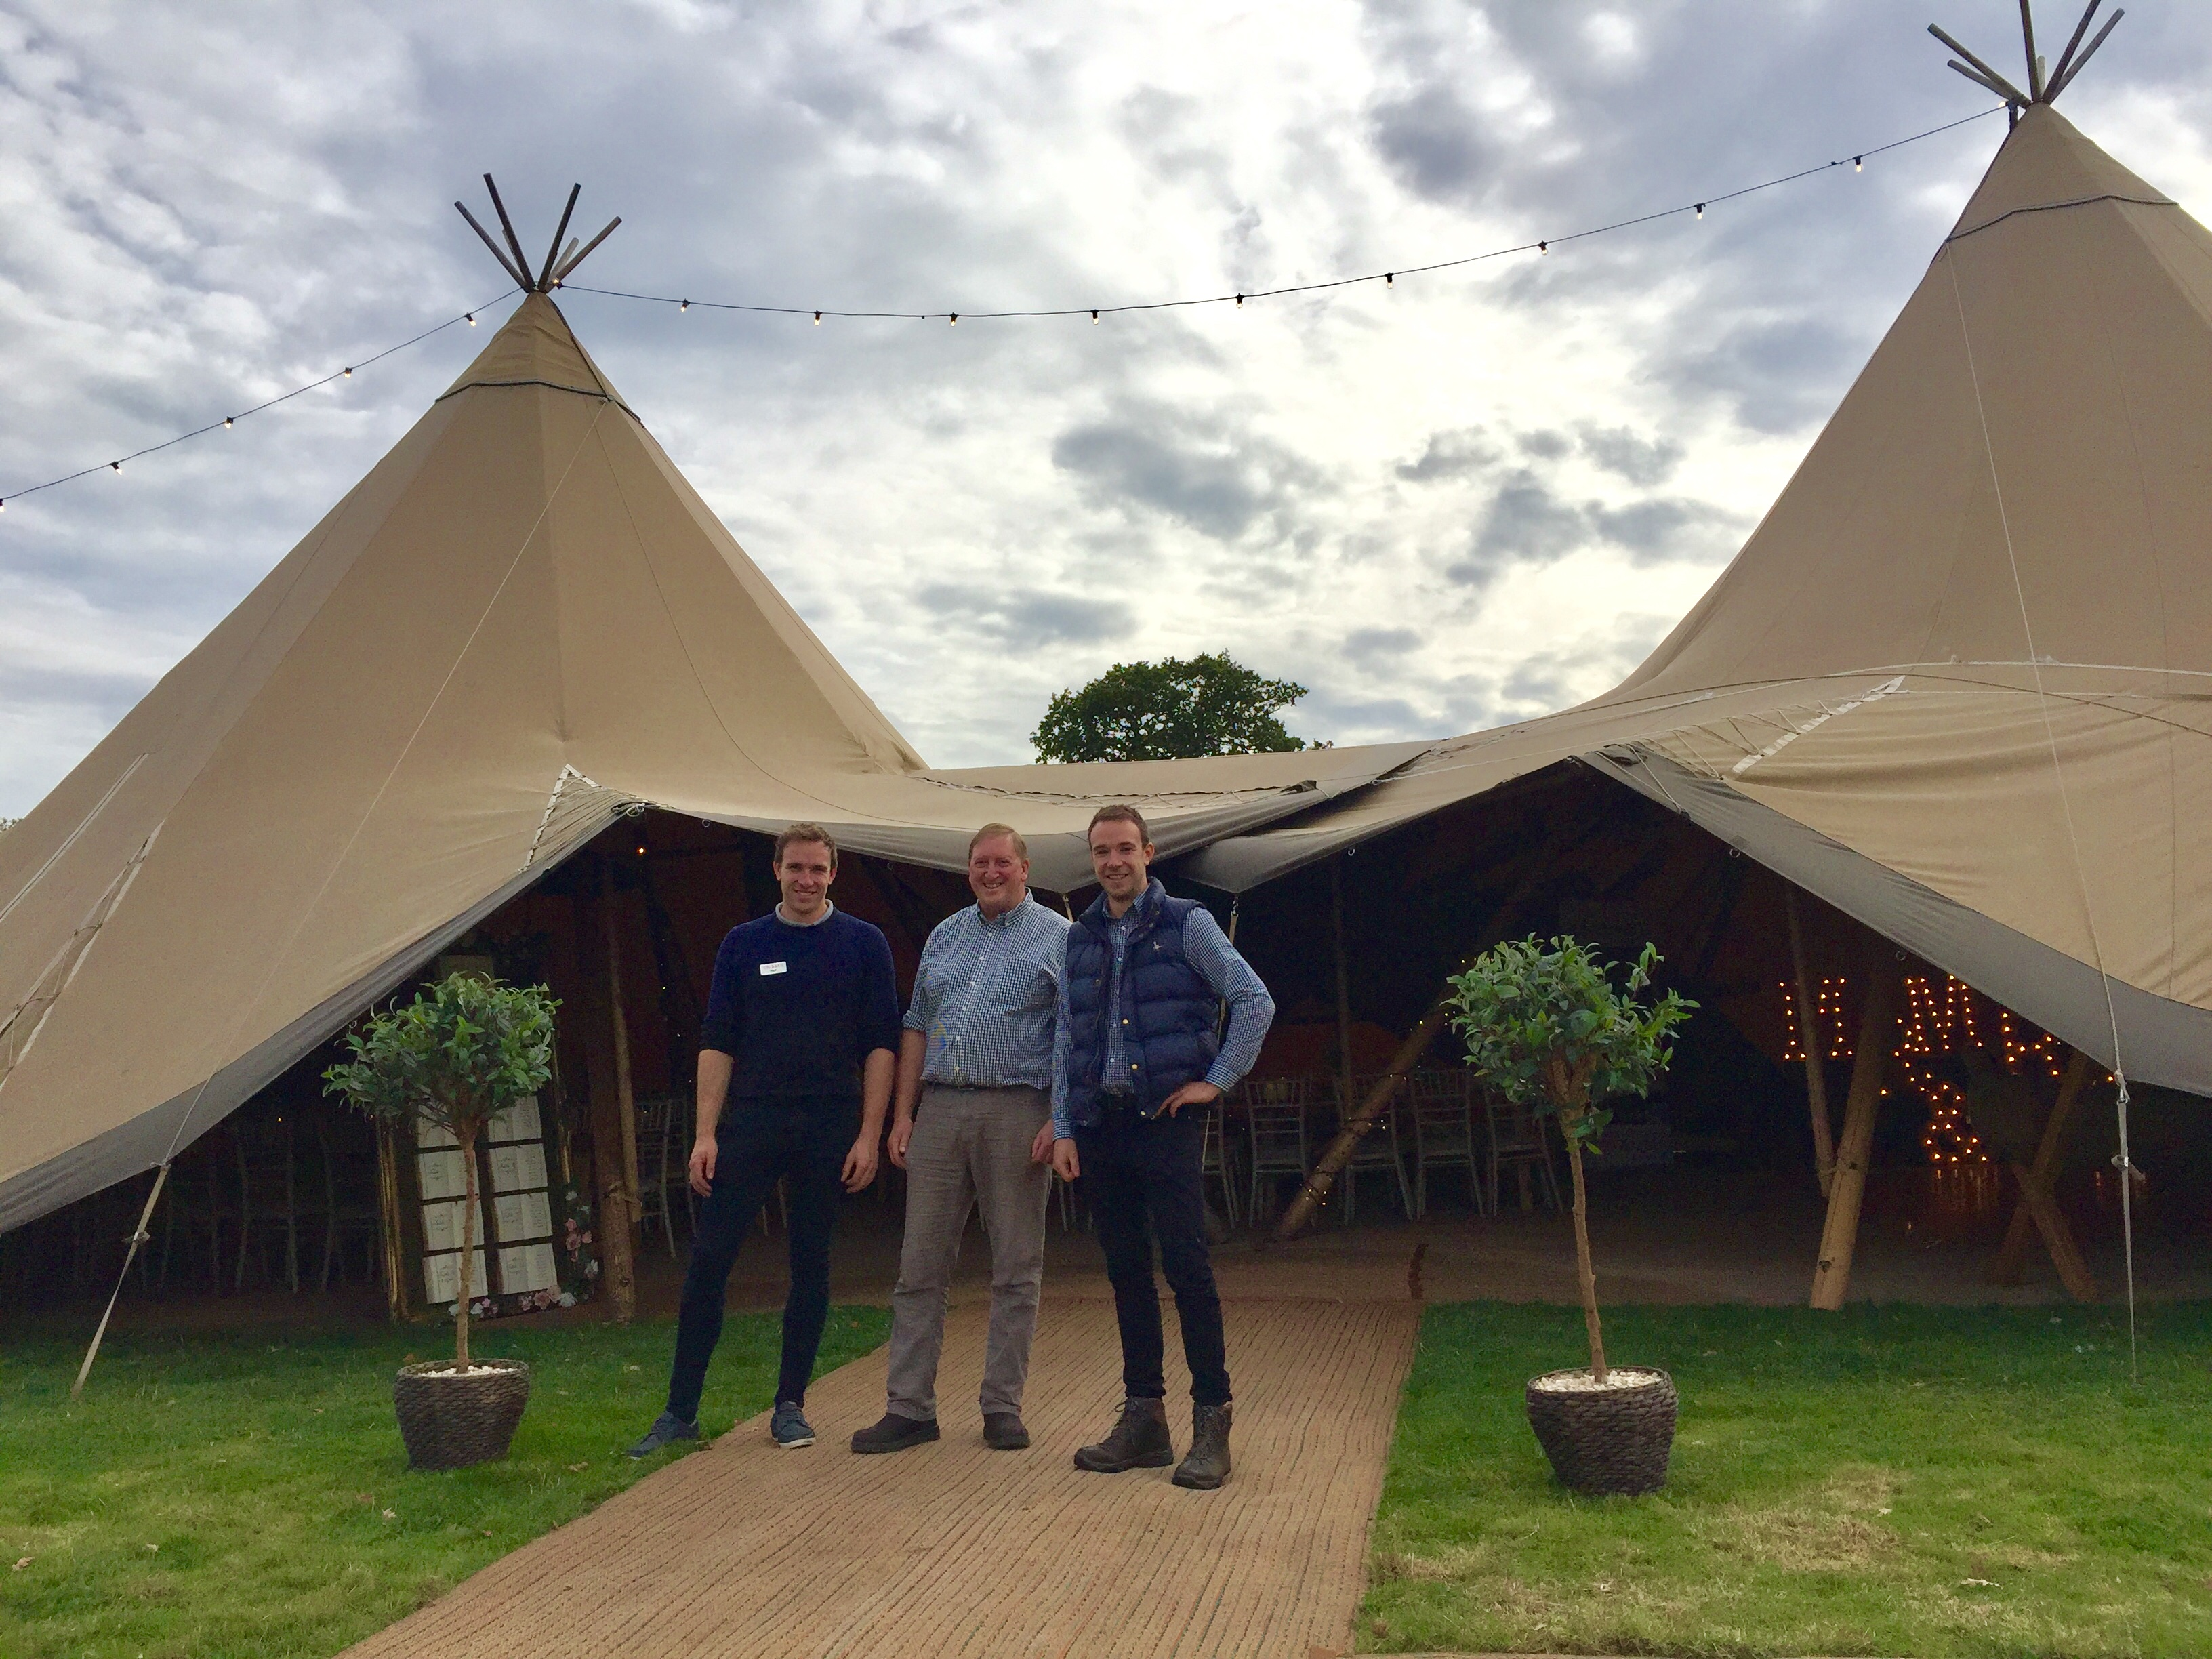 New Country Wedding Reception Venue Unveiled At Croots Farm